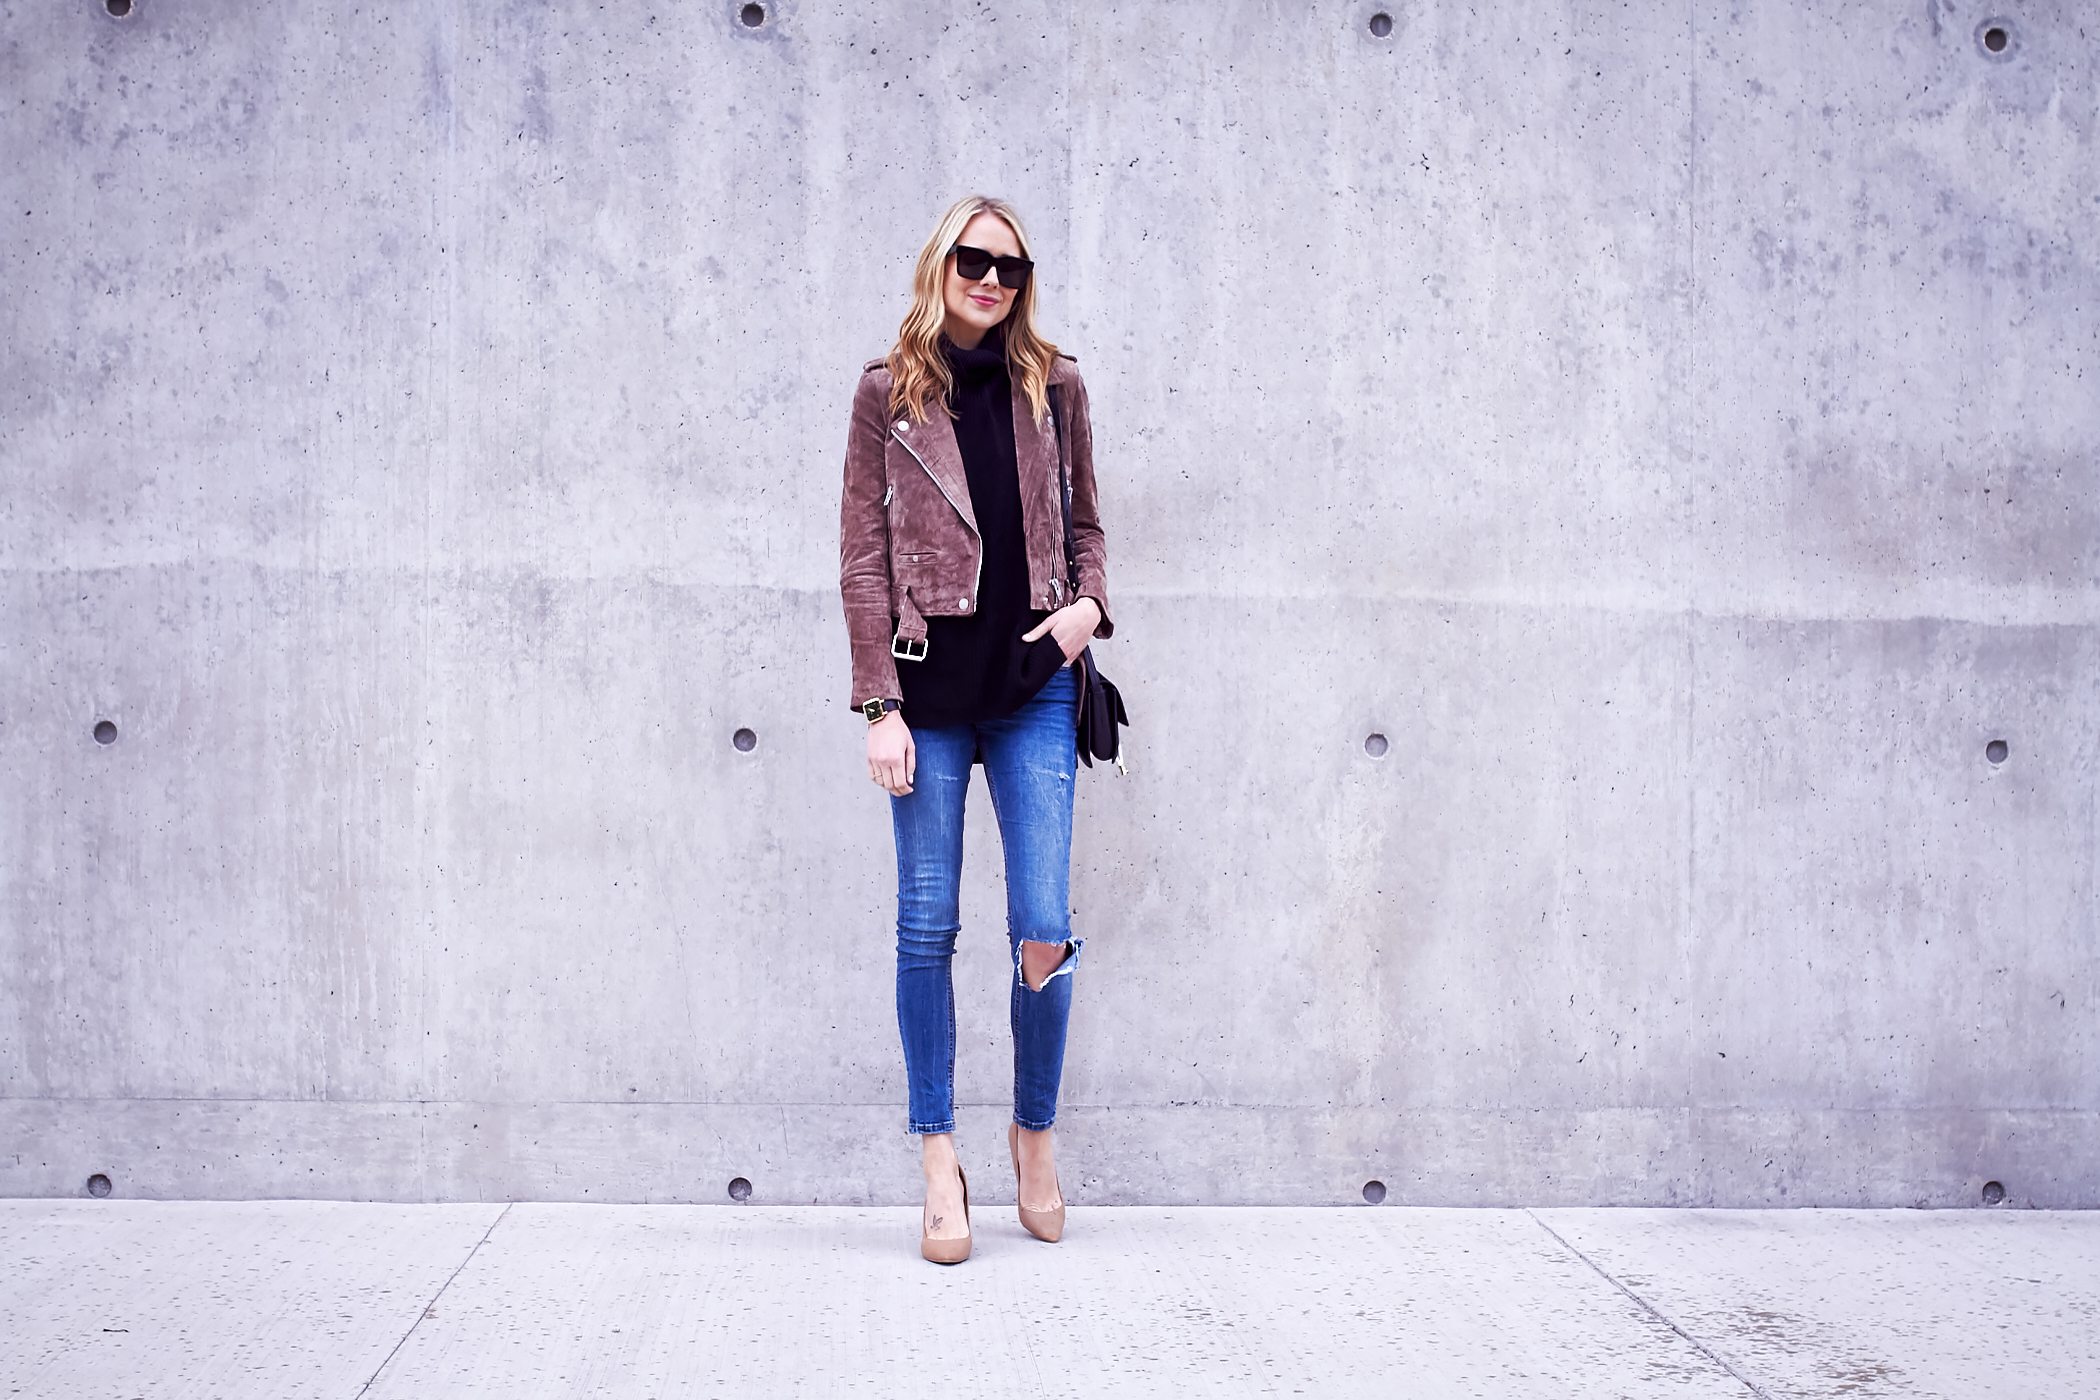 fashion-jackson-blanknyc-morning-suede-moto-jacket-black-sweater-ripped-denim-jeans-nude-pumps-chloe-faye-handbag